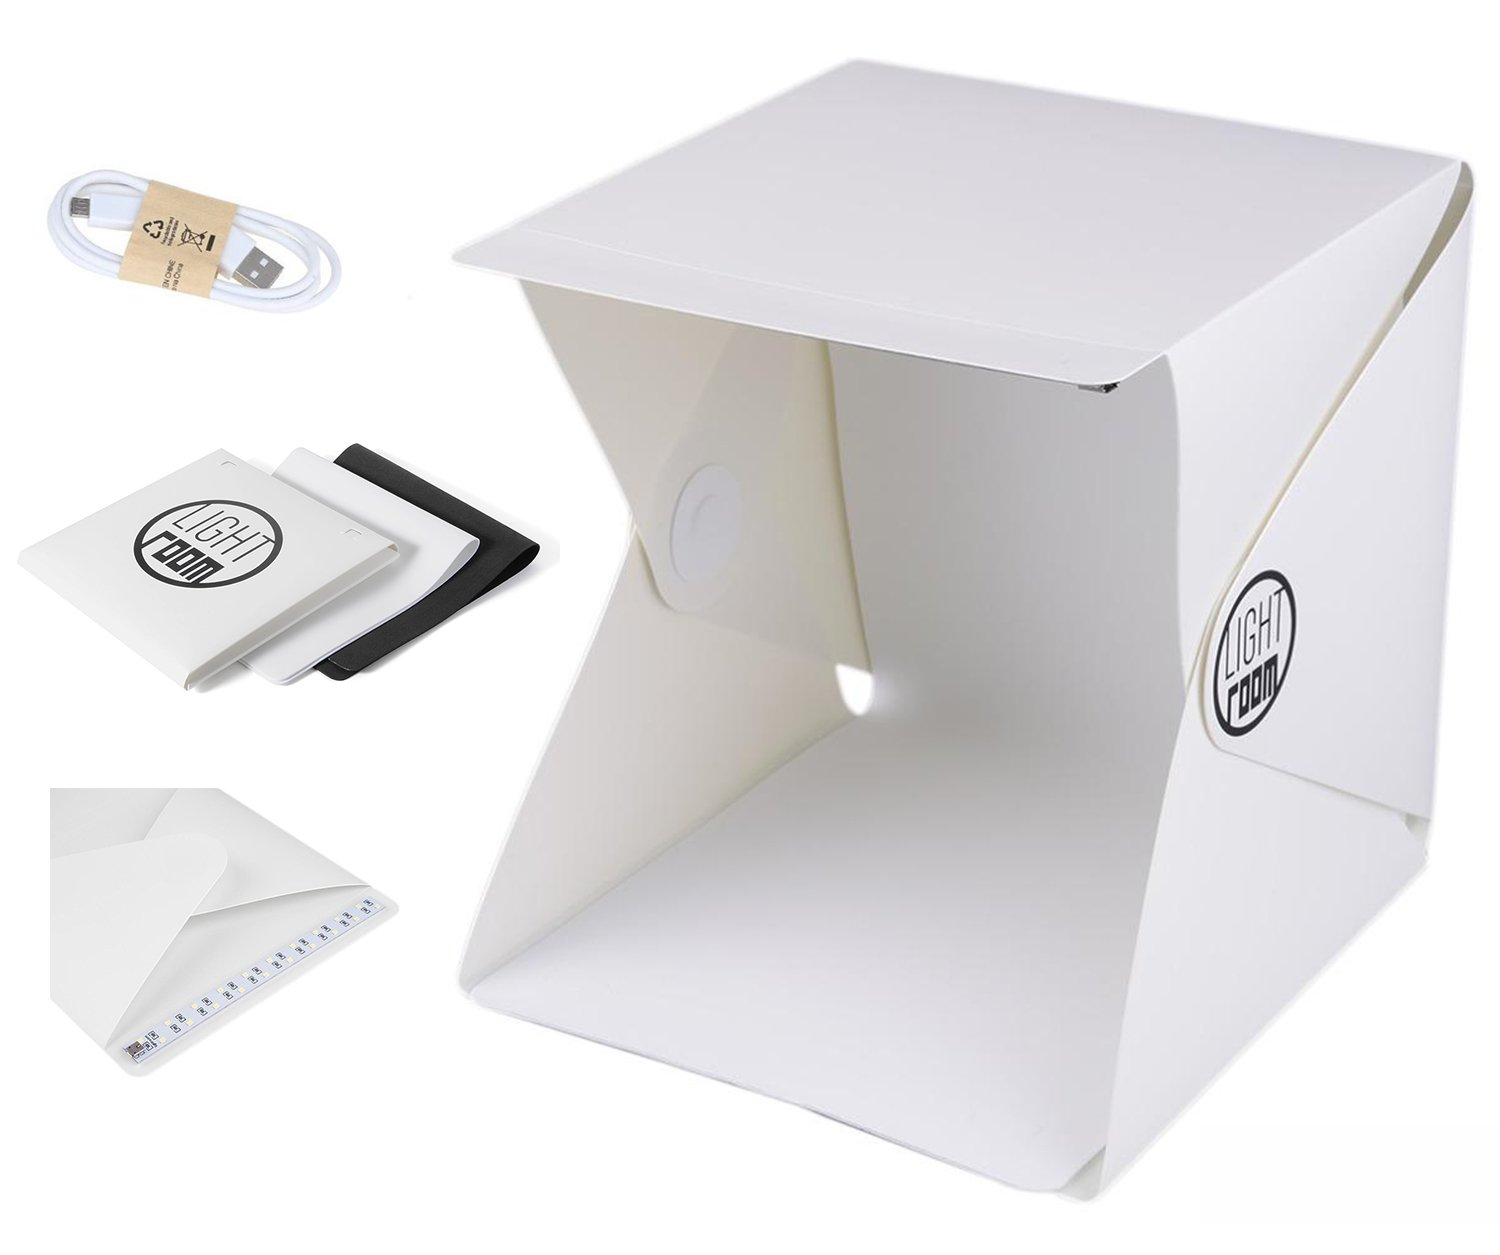 Portable Lightbox Photography Studio for Small Size Items Studio Light Box Kit with LED Lights and Two Blackground, Folding Light Tent for Easy Assemble.